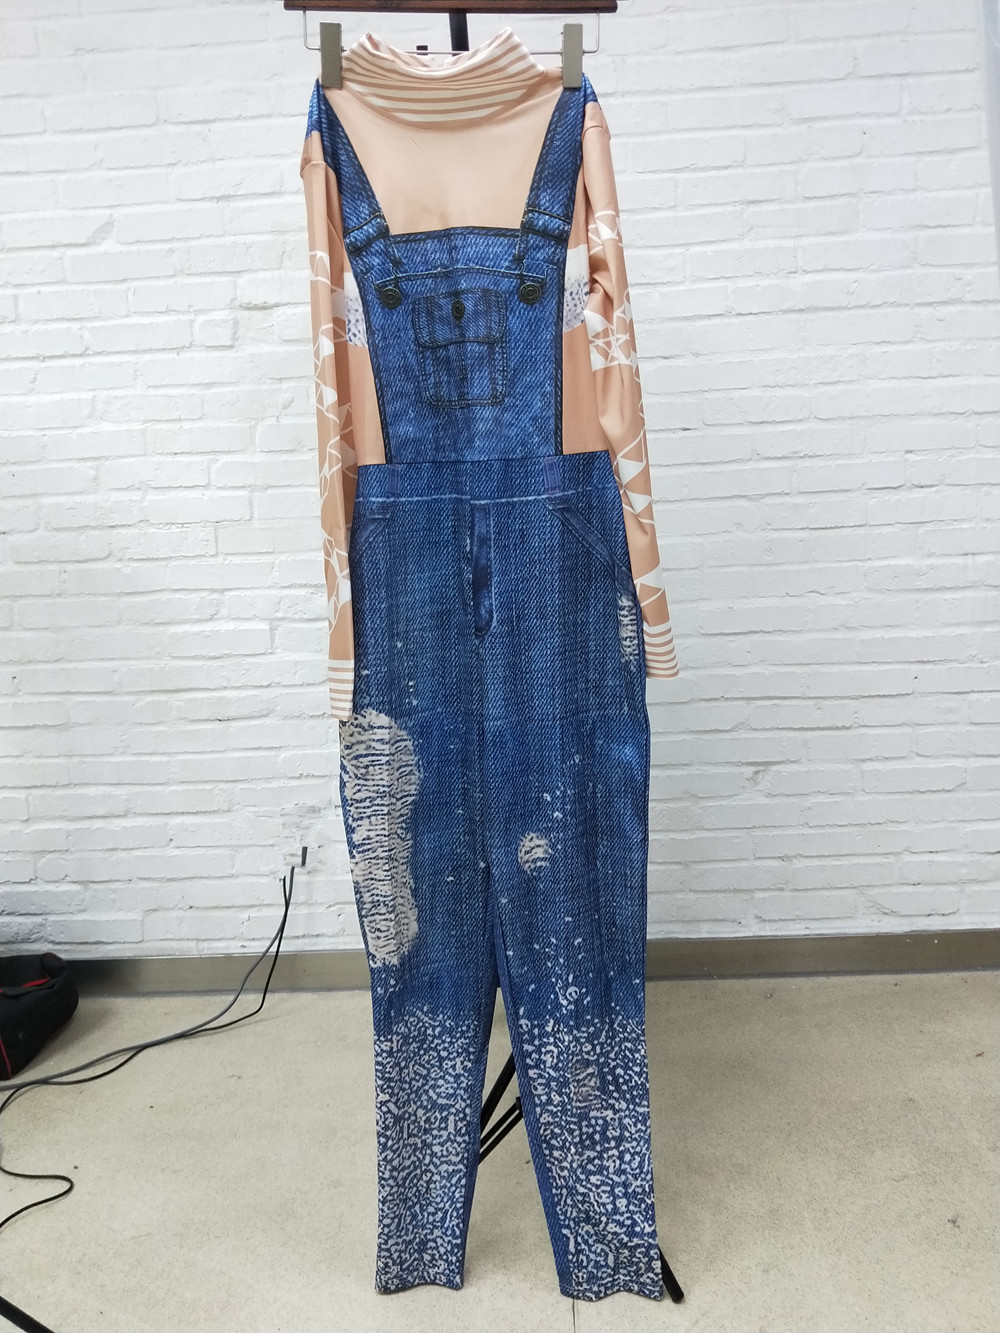 Elegant Long Sleeve Faux Denim Jumpsuit Overalls Women Turtleneck Skinny Print Jumpsuit Long Pants Casual Rompers in Jumpsuits from Women 39 s Clothing